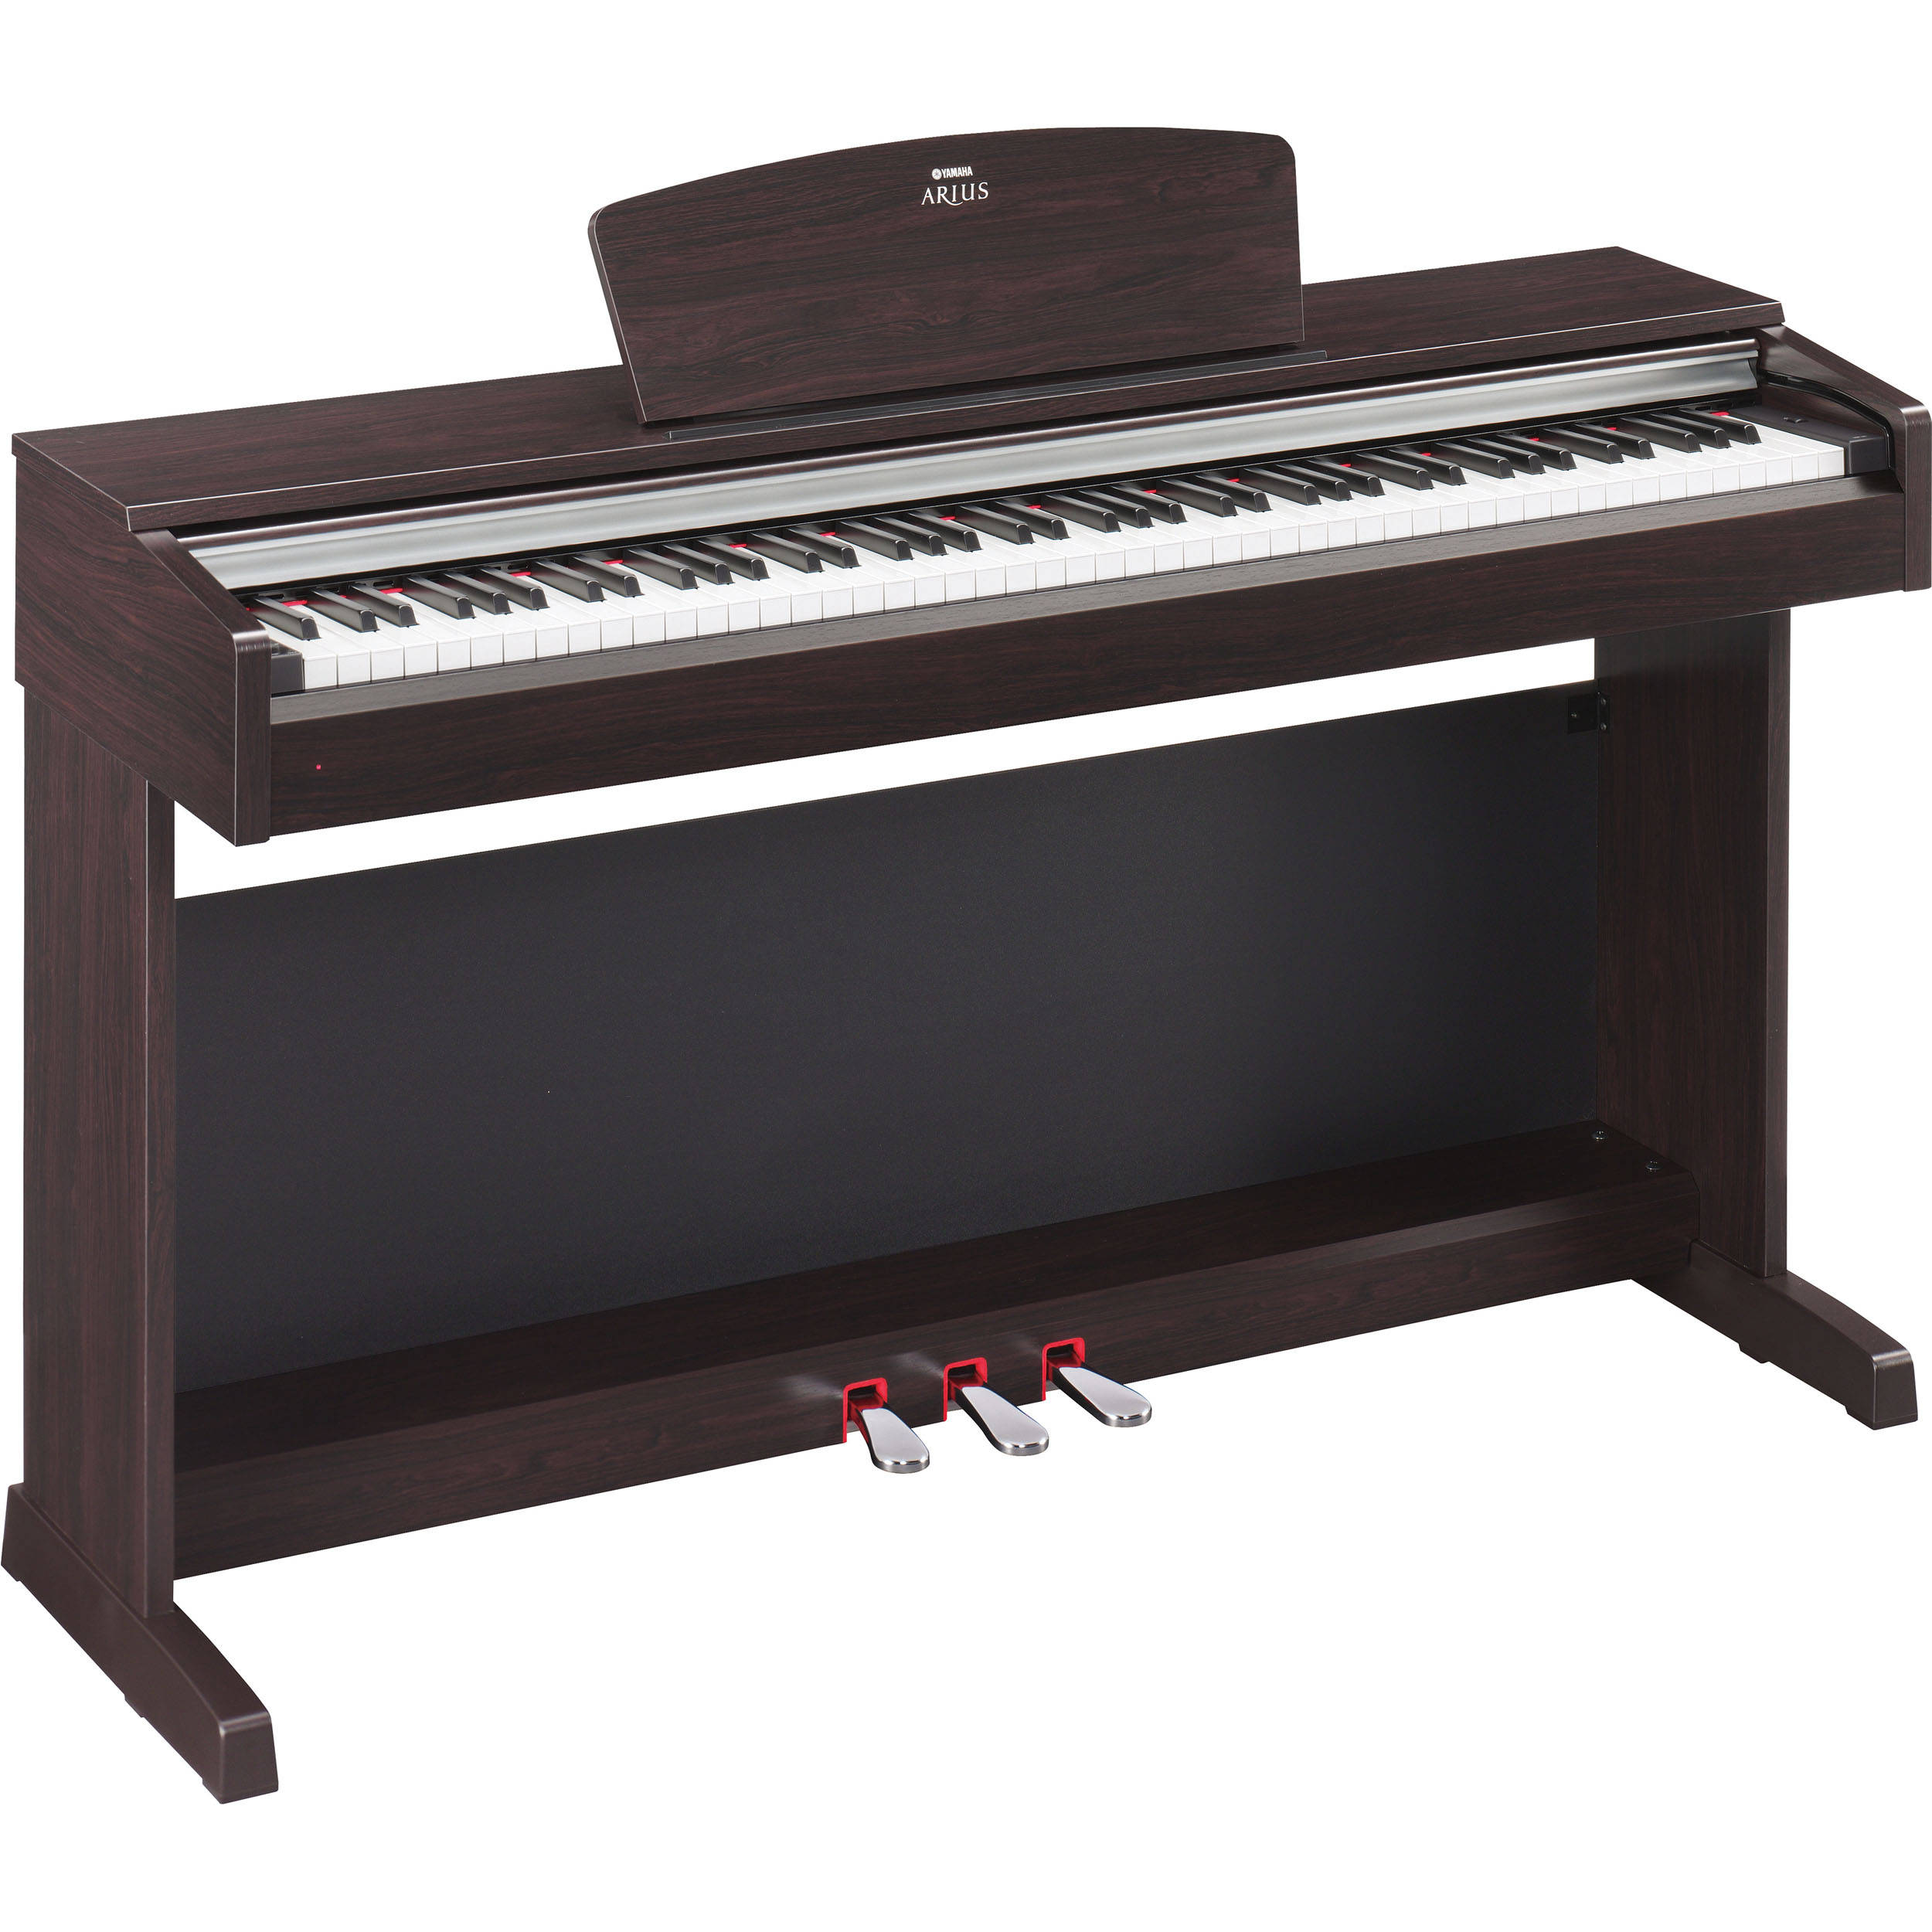 yamaha arius ydp 135r digital piano ydp135r b h photo video